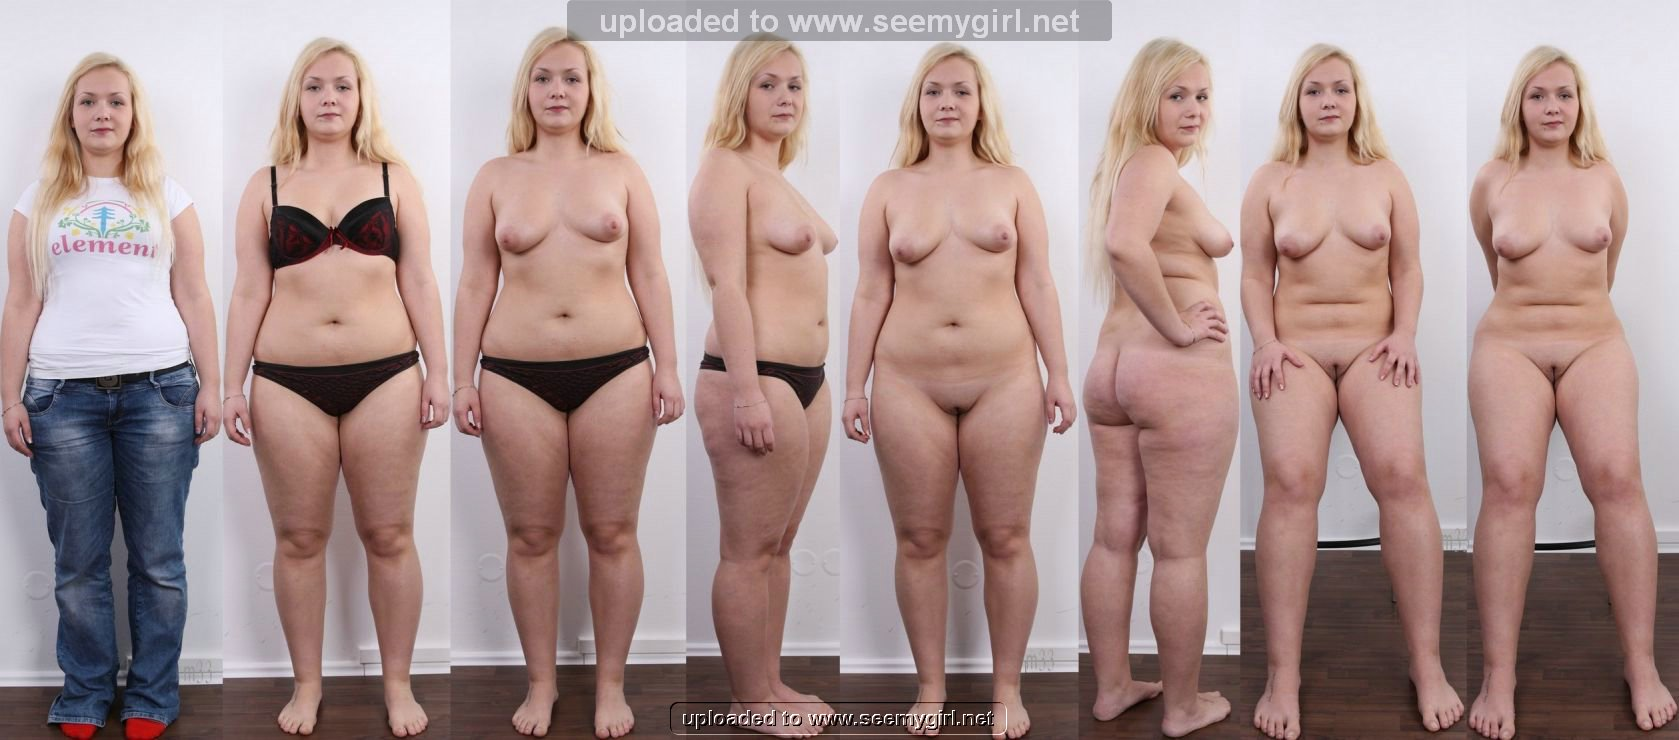 chubby-nude-female-group